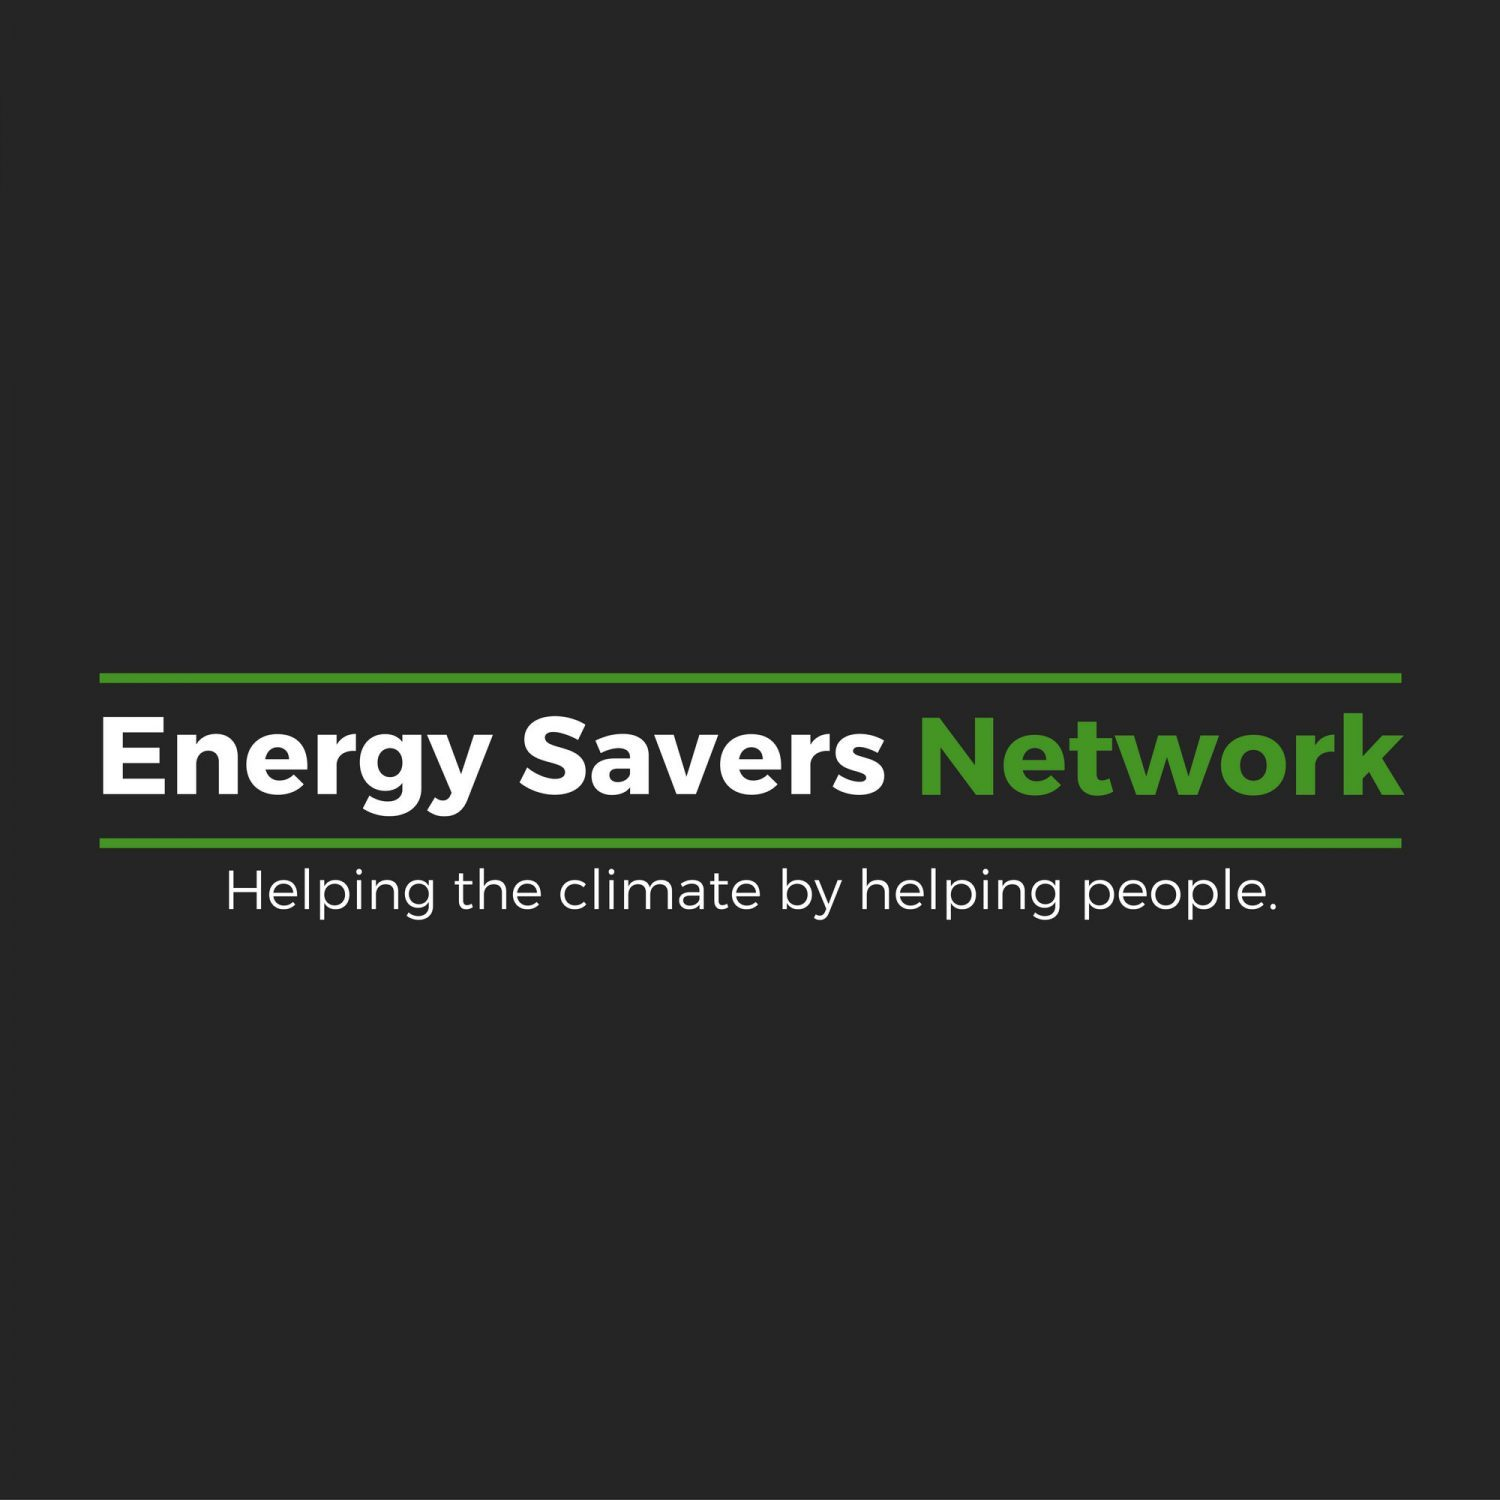 Energy Savers Network Logo